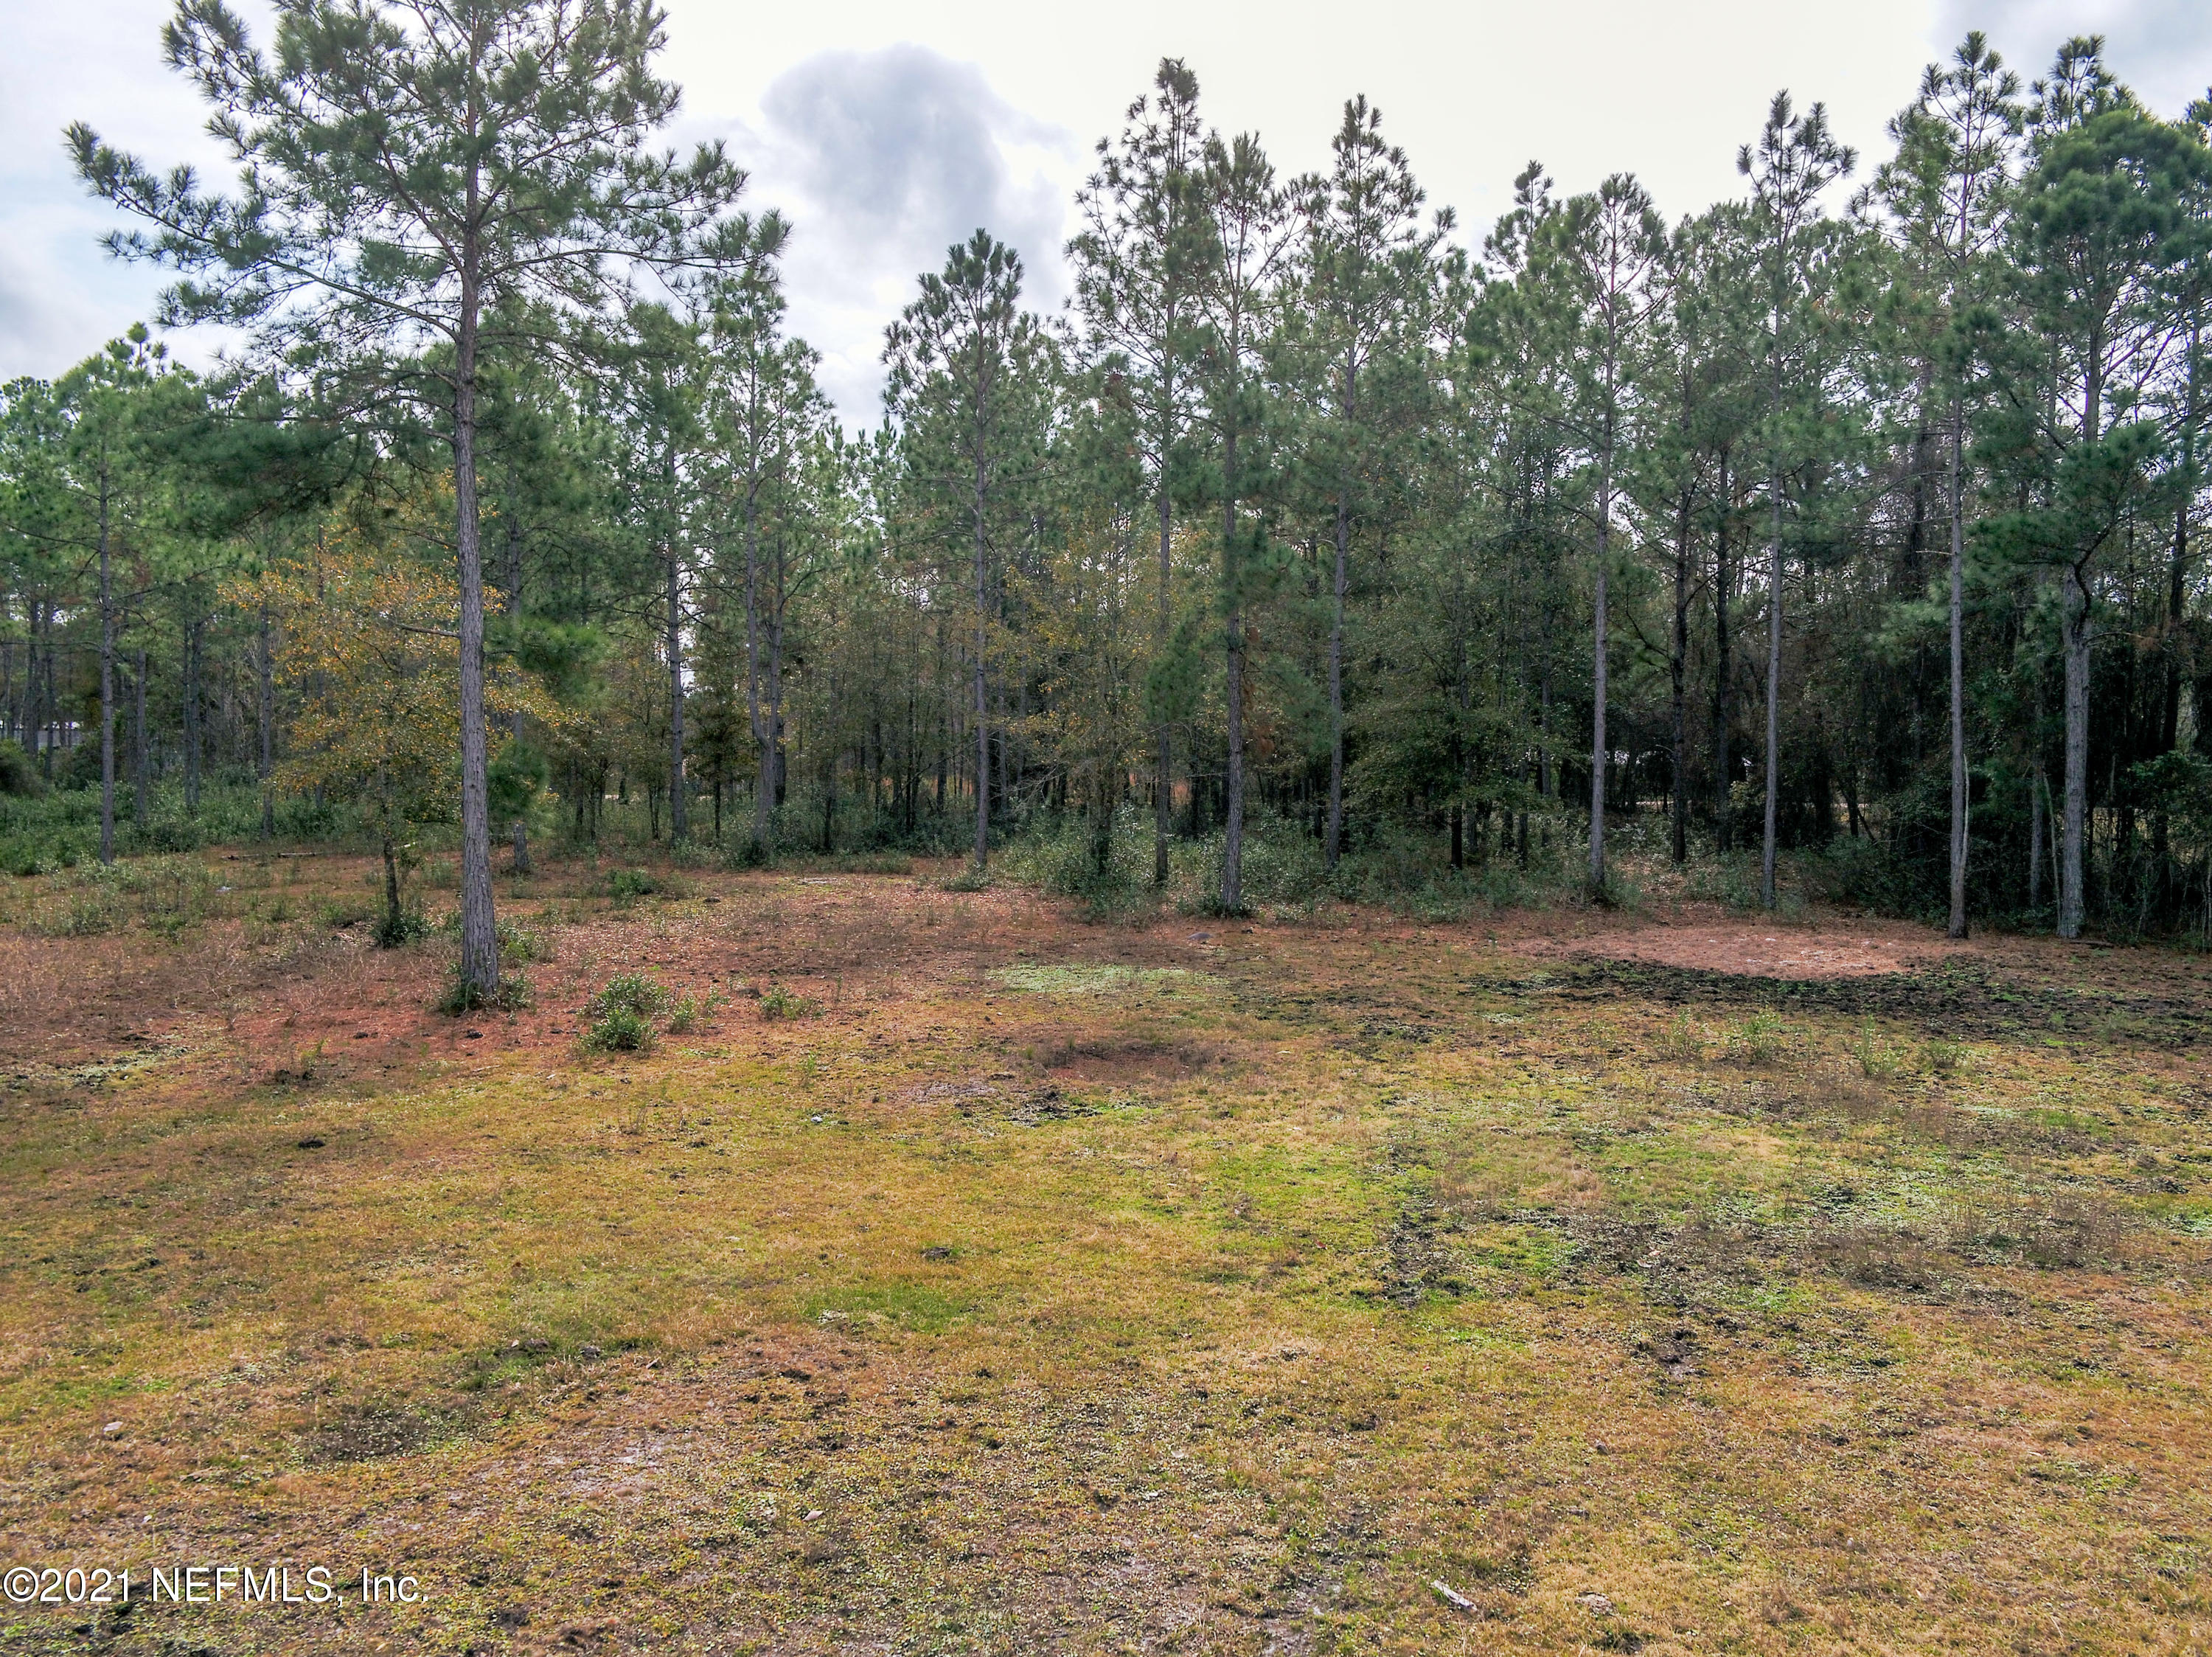 0 LONG BRANCH, JACKSONVILLE, FLORIDA 32234, ,Vacant land,For sale,LONG BRANCH,1090570